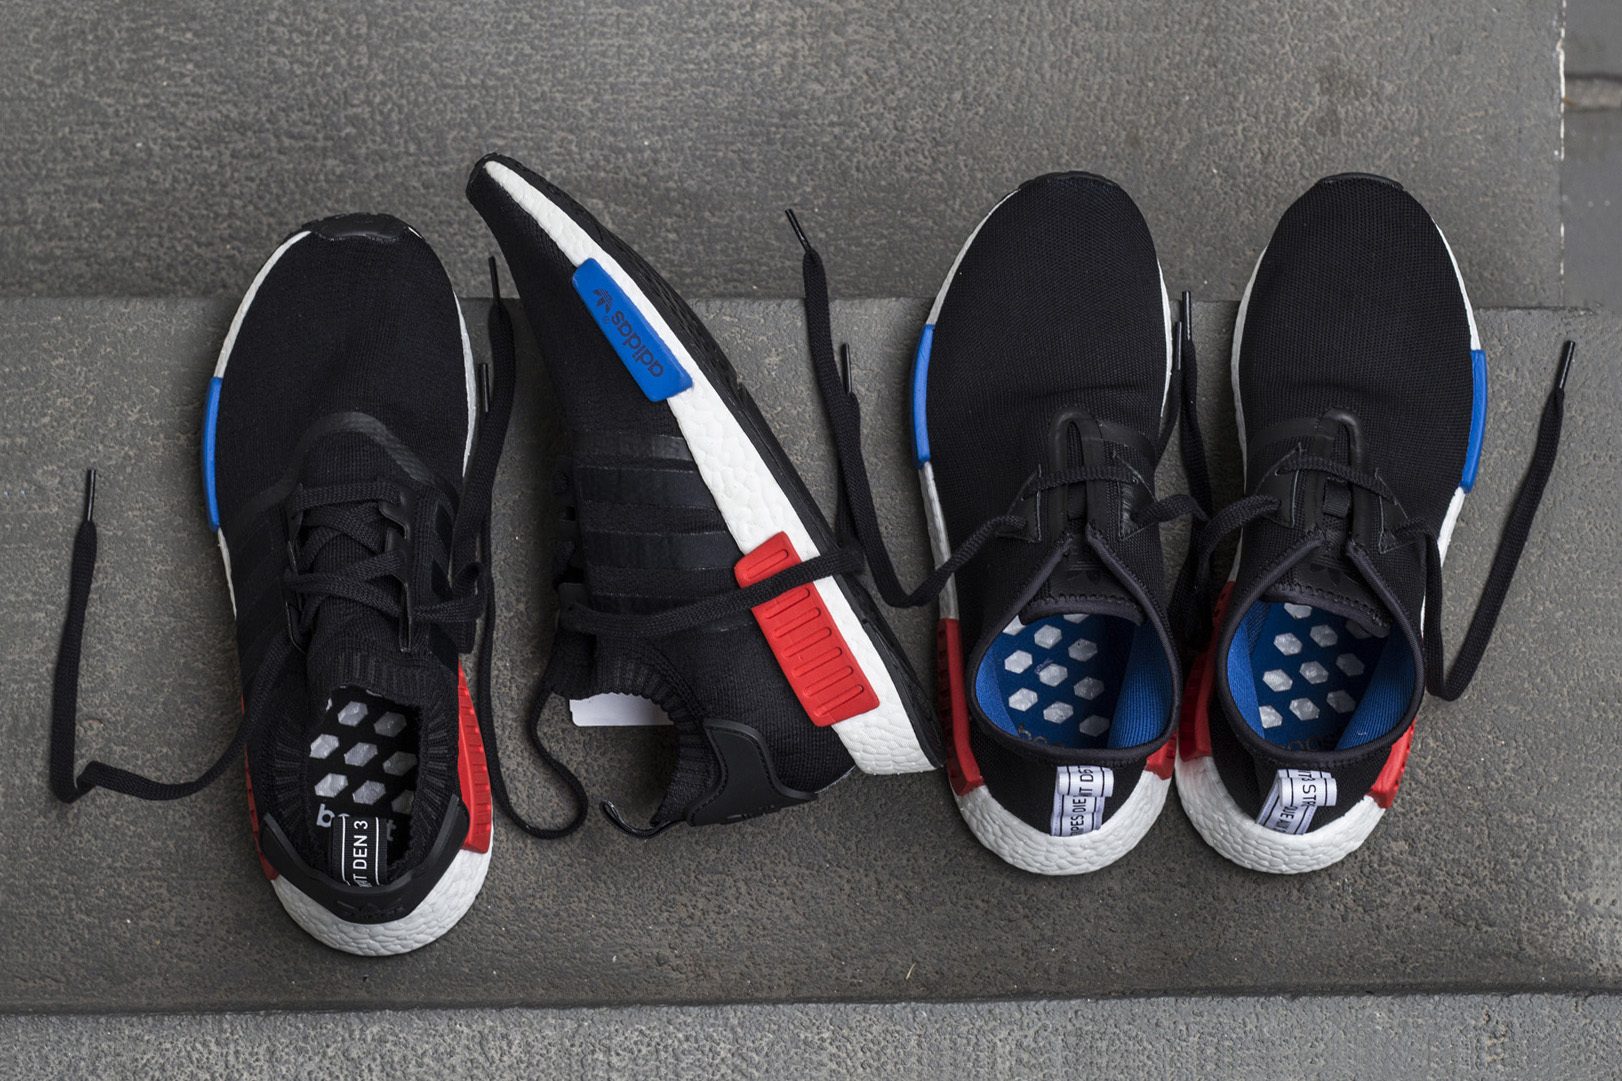 adidas nmd tumblr,l 610x610 shoes adidas nmd b